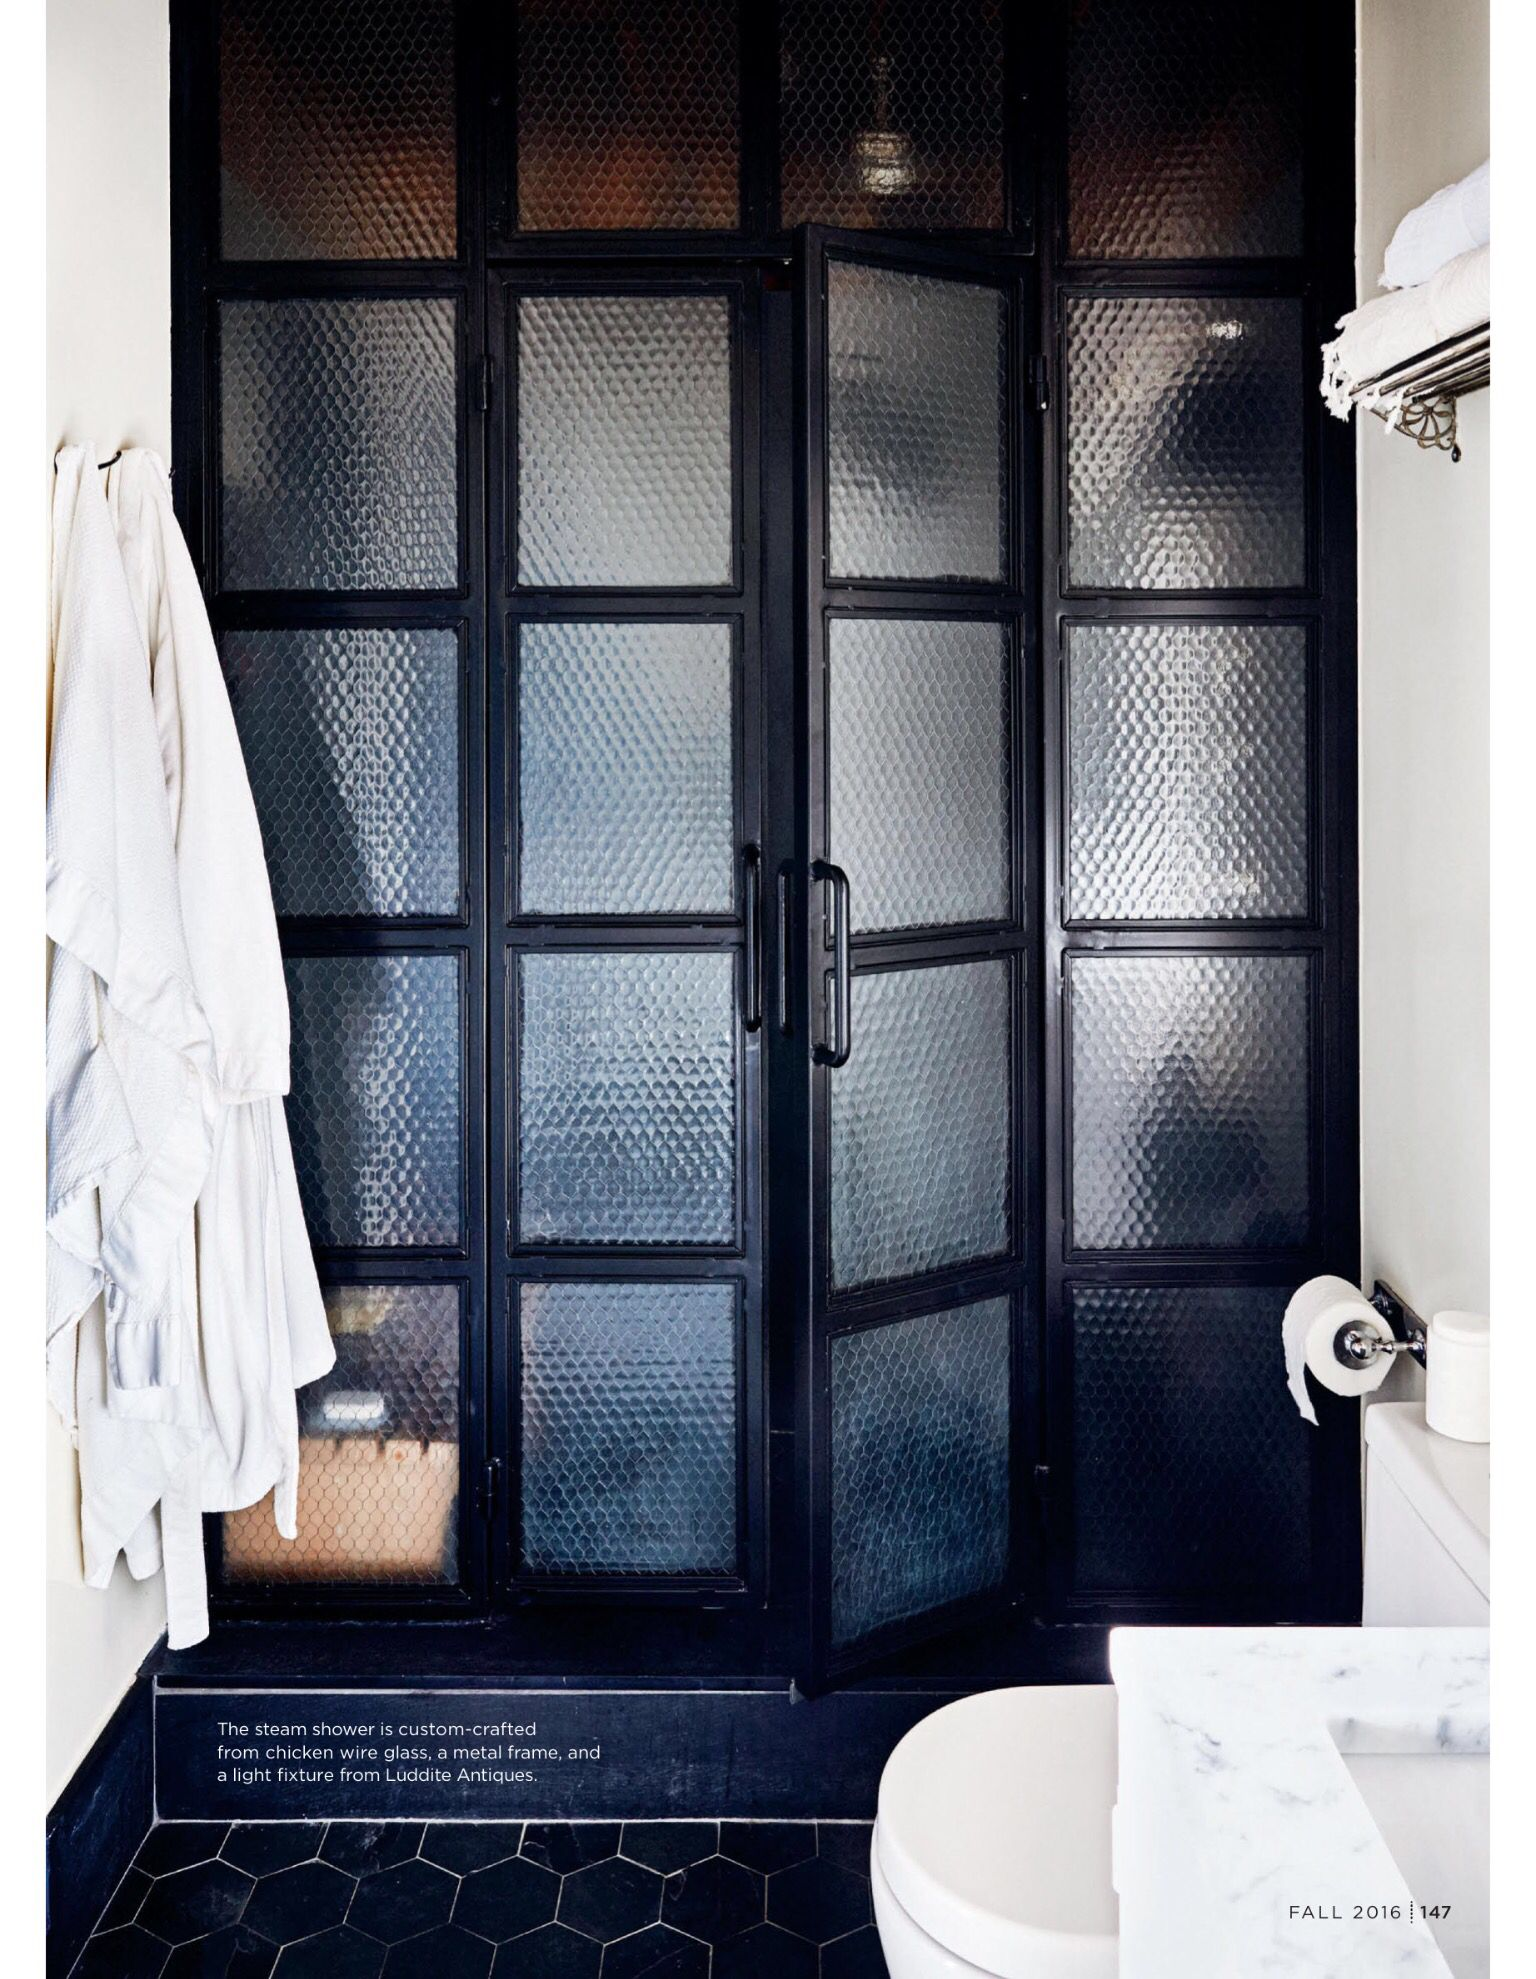 Pin by Katie Sommons on haus | Pinterest | Future, Cottage style and ...